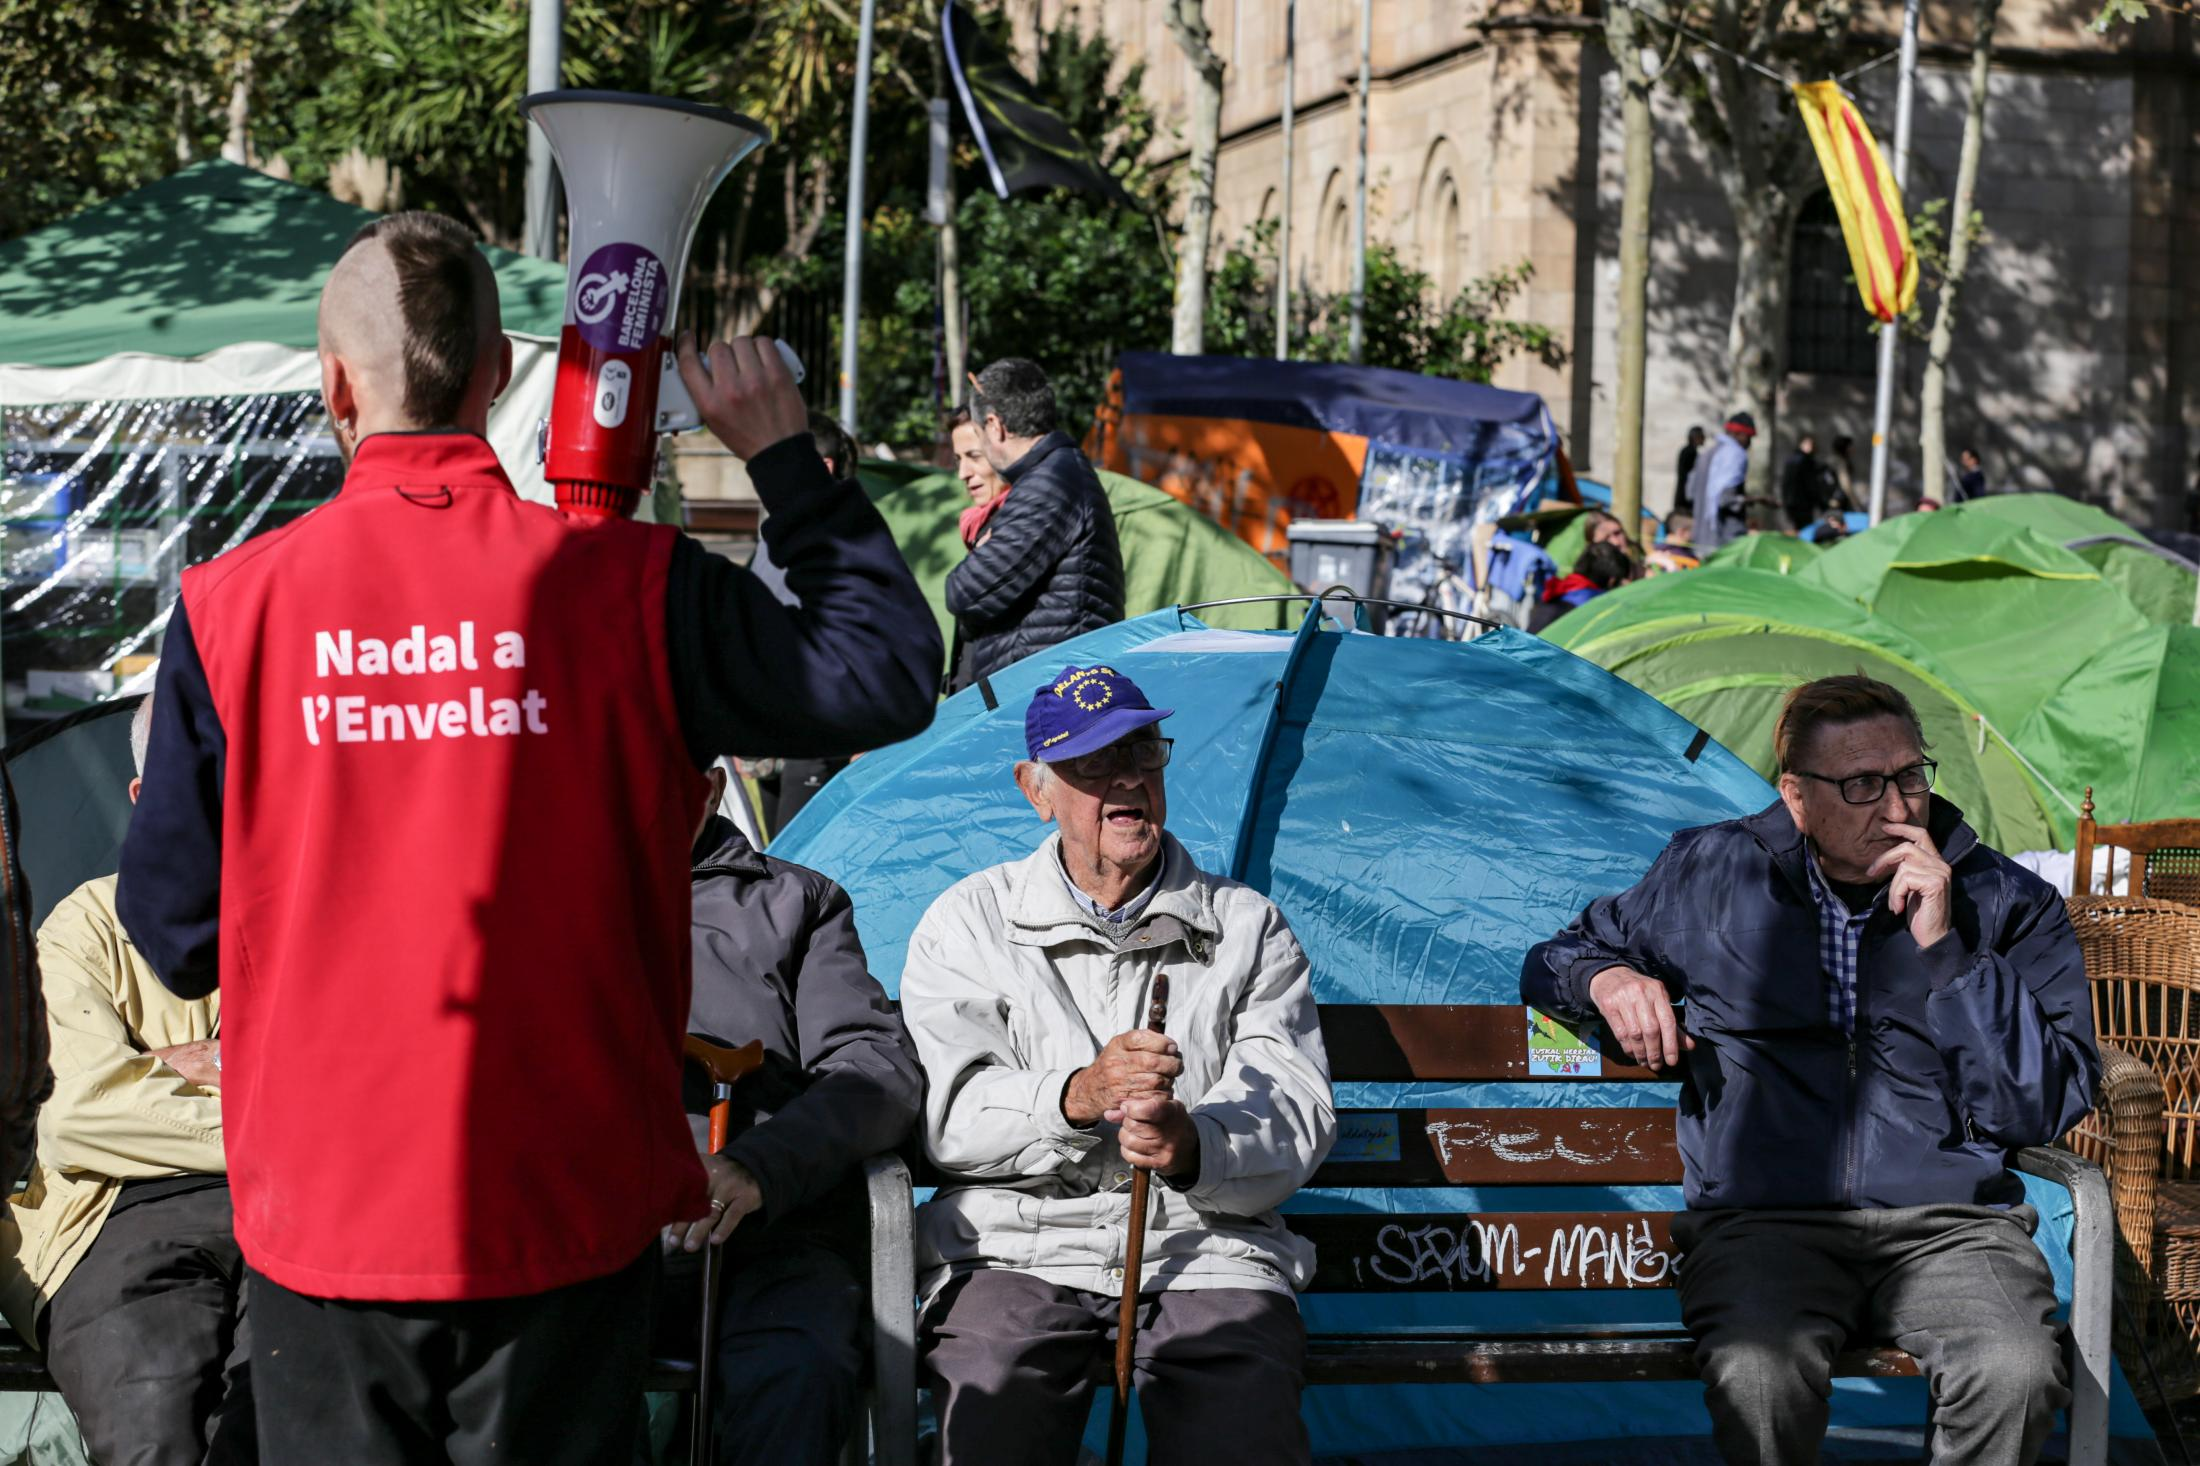 The youth after achieved historic victories in many centers (no assessment and suspension of classes, unique evaluation, public positioning) move together to occupy plaza Universidad with camping tents. November 2019, Barcelona, Spain.